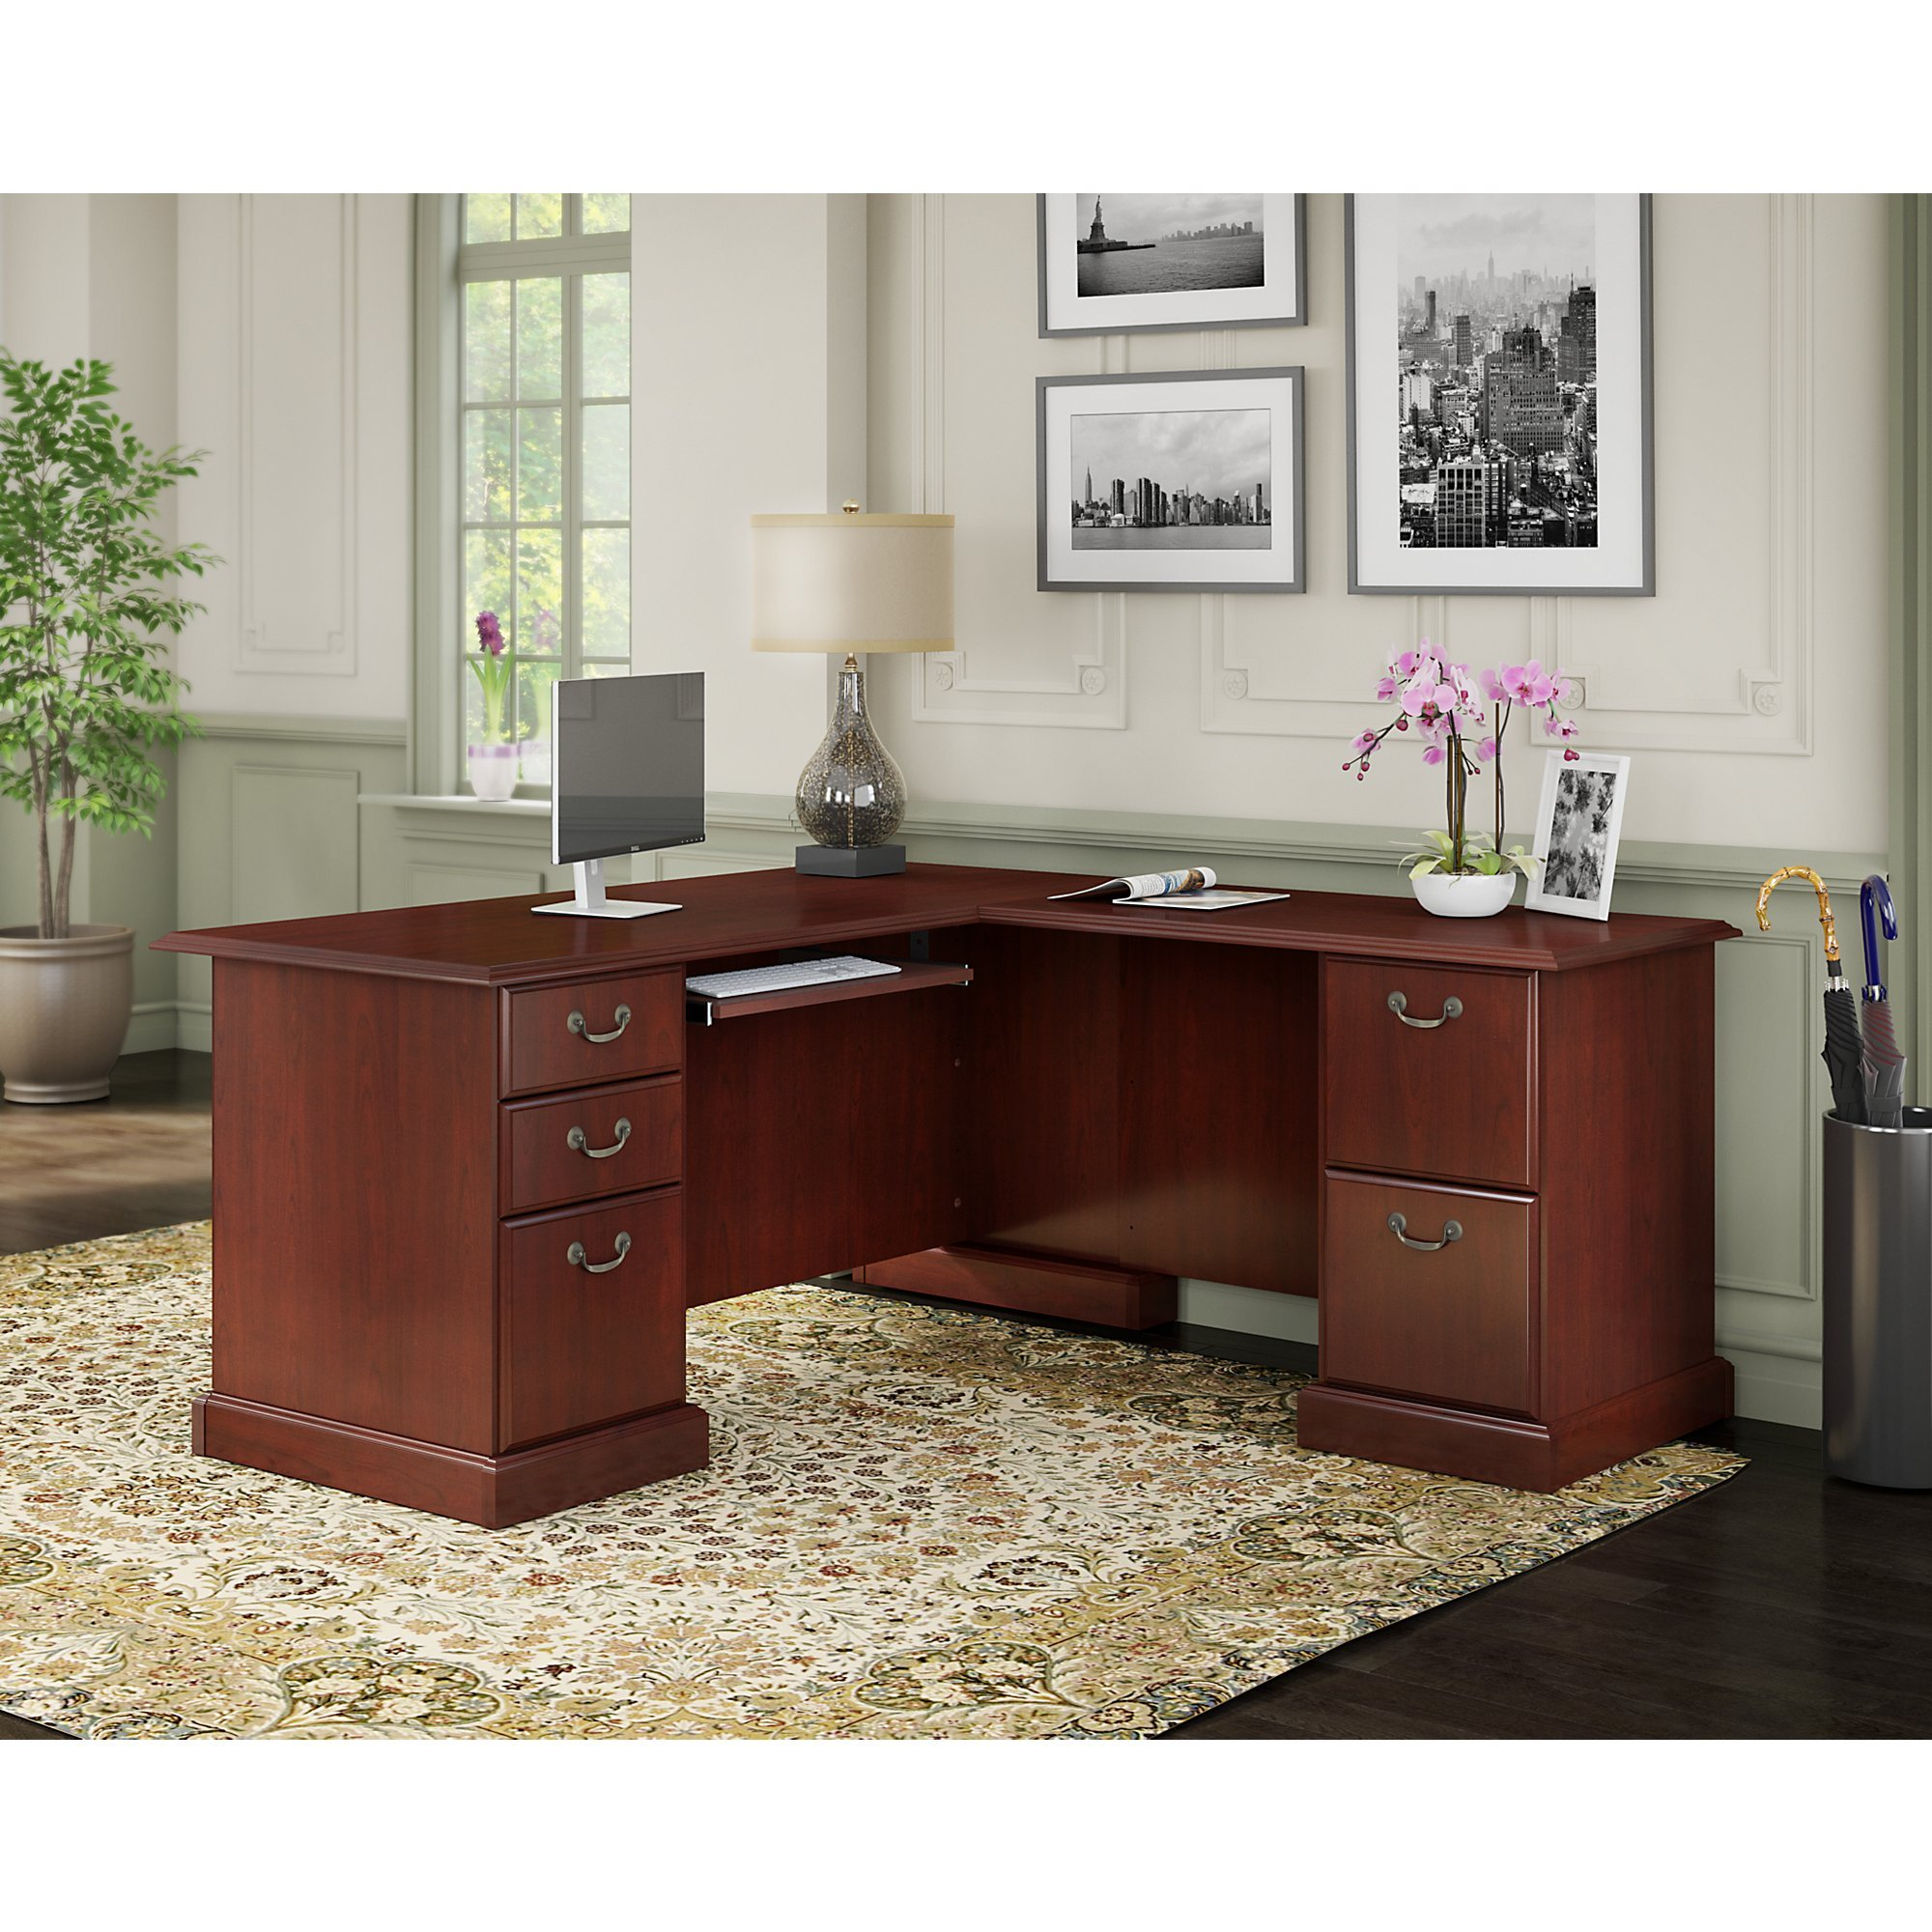 kathy ireland Office by Bush Furniture Bennington L Shaped Desk with Drawers in Harvest Cherry by kathy ireland Home by Bush Furniture (Image #2)